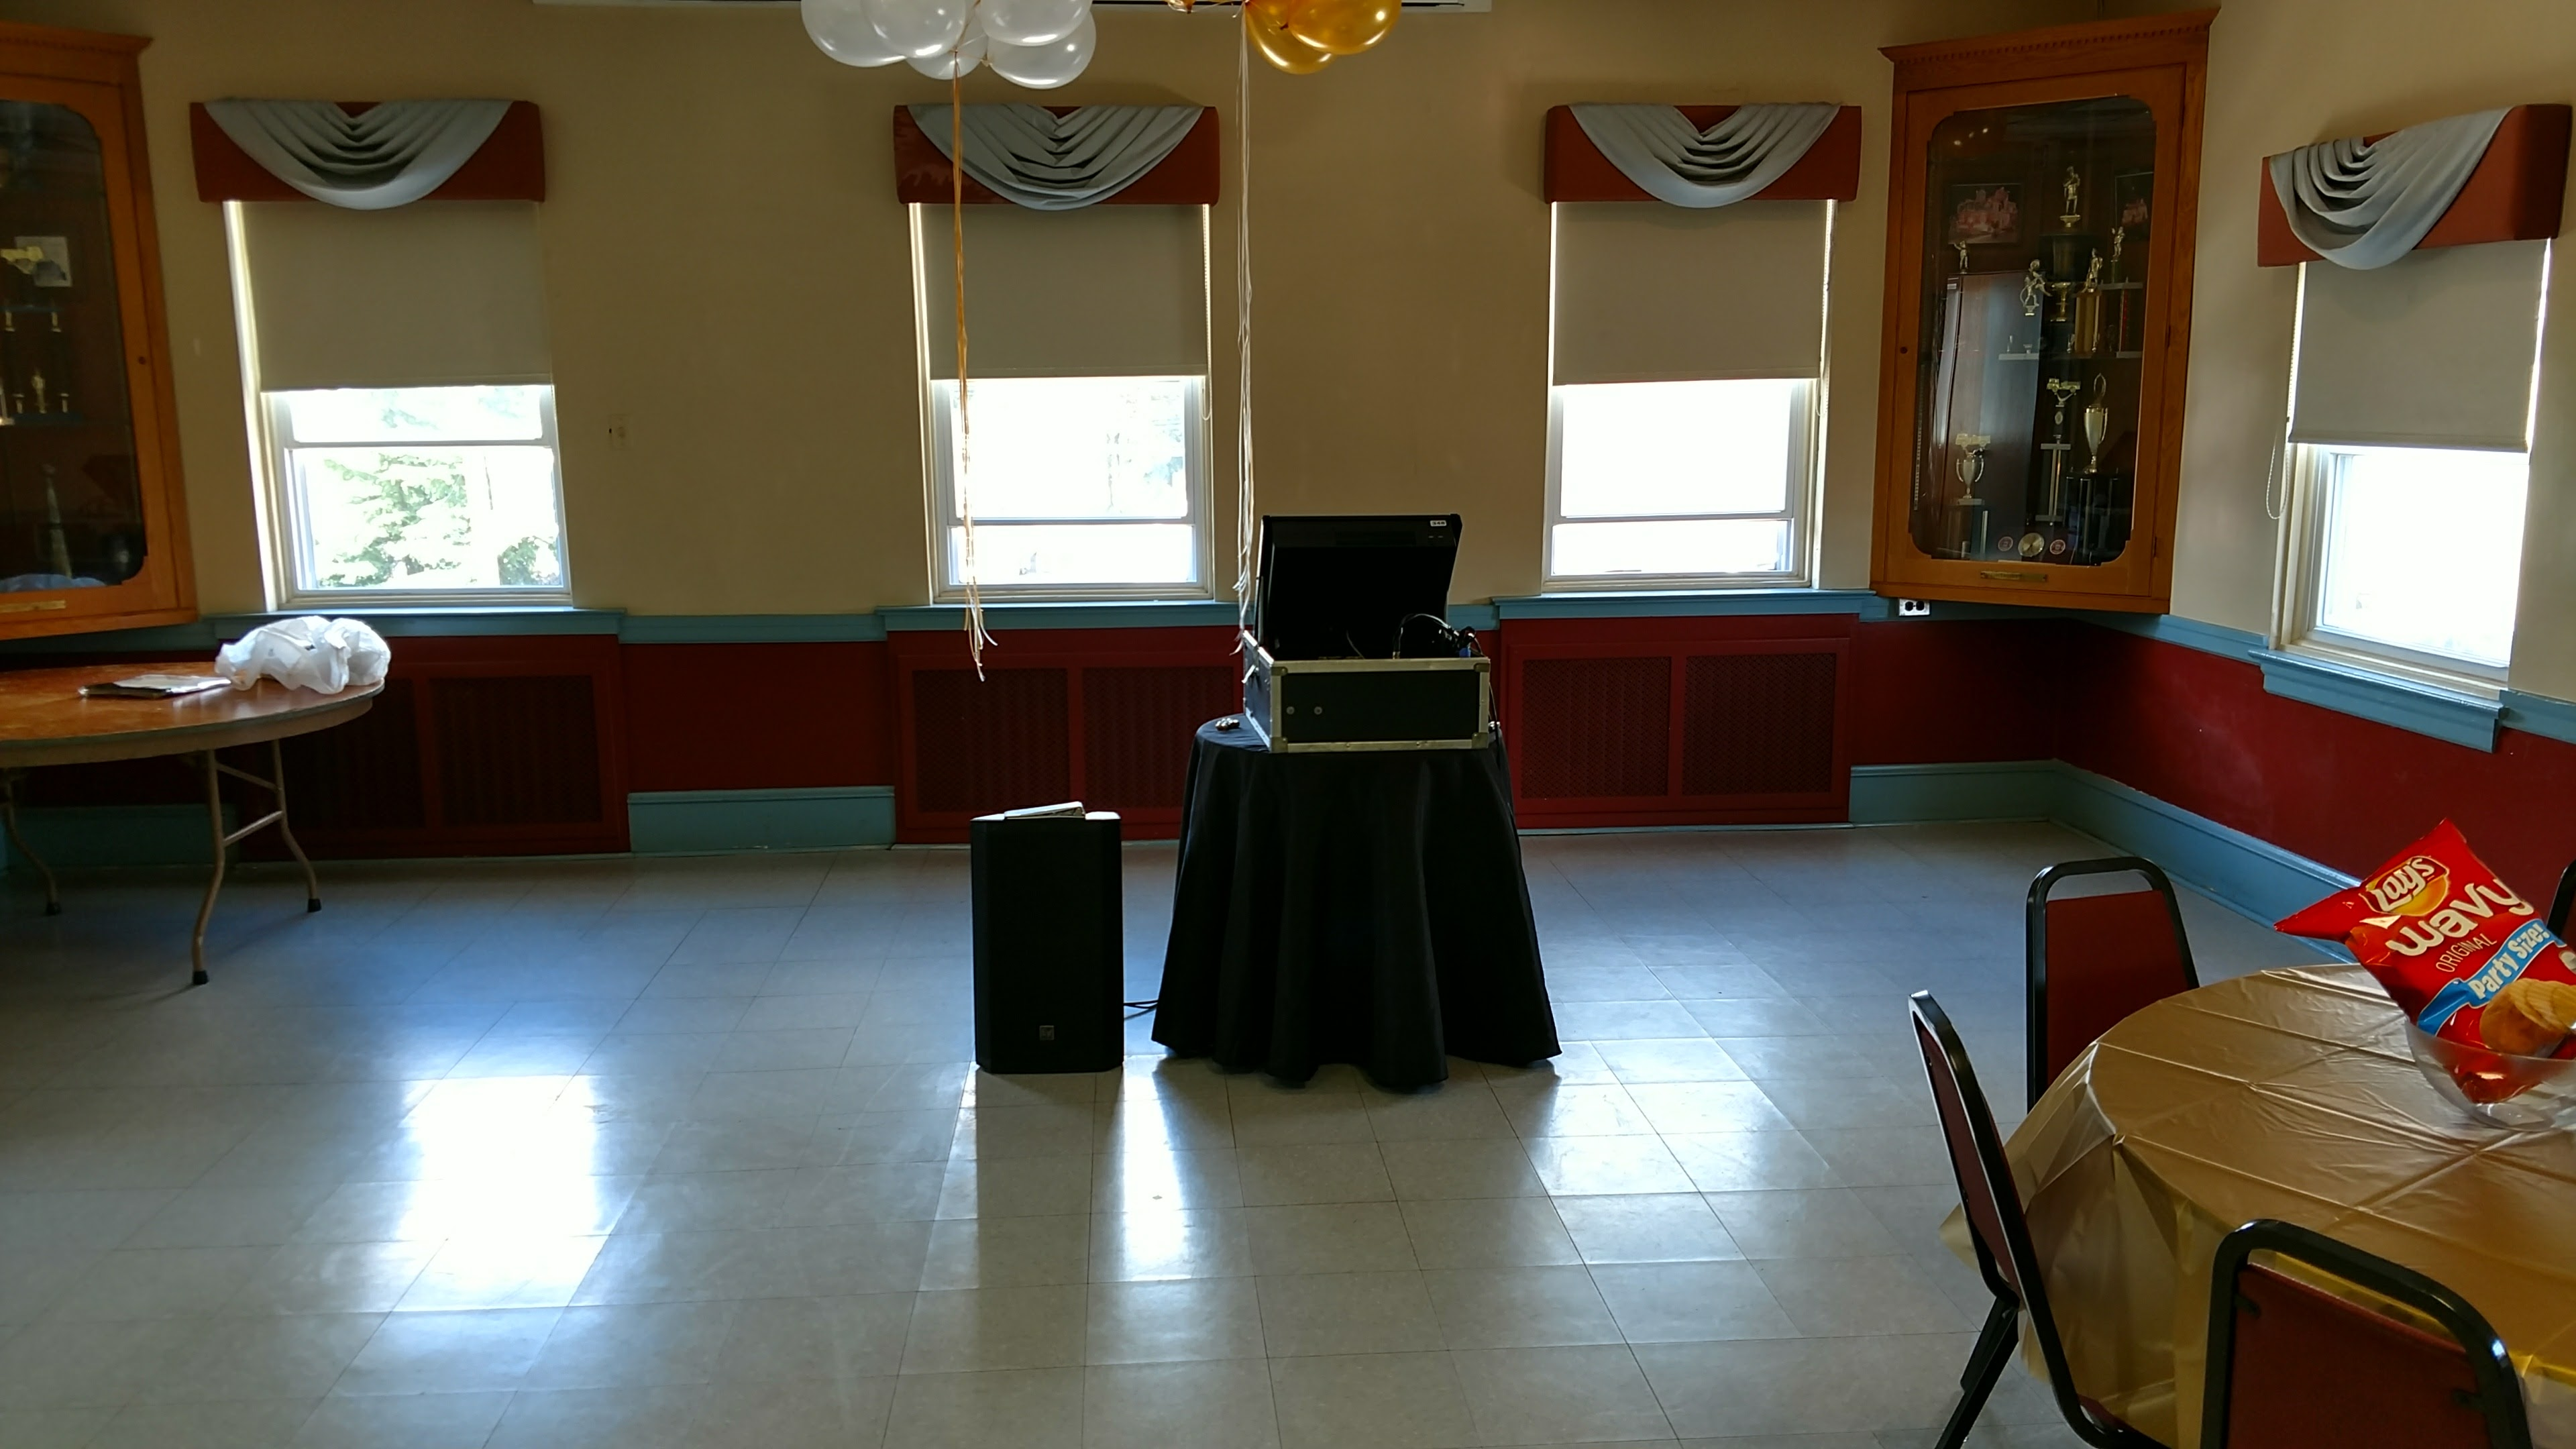 Collingswood Fire Department Hall Rentals In Collingswood Nj